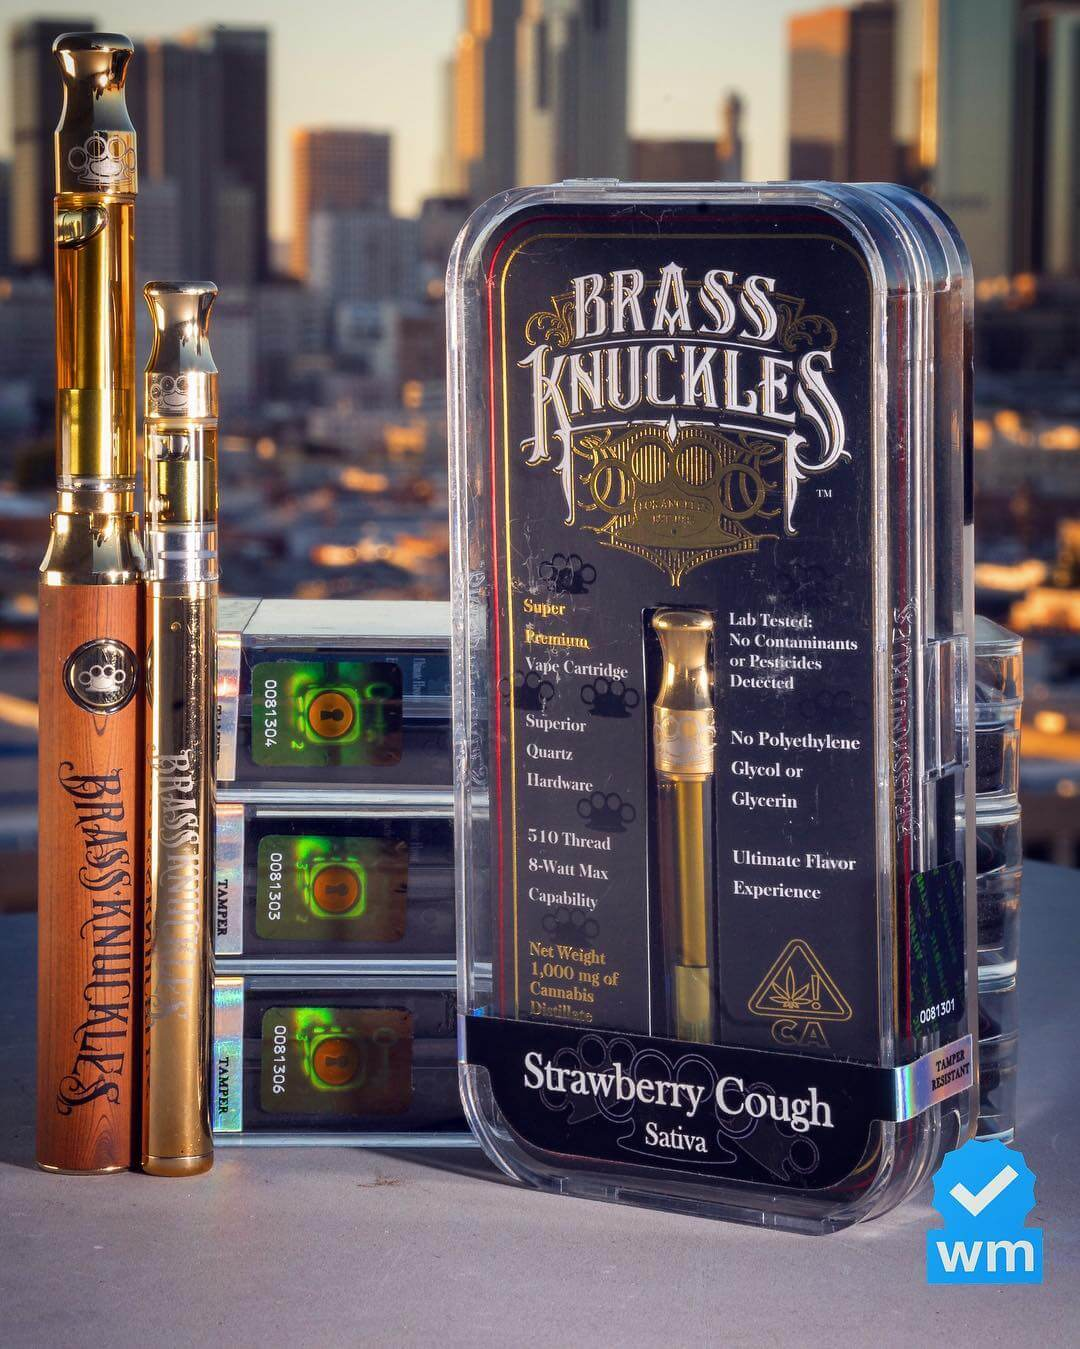 Fake Brass Knuckles Cartridges For Sale All More than